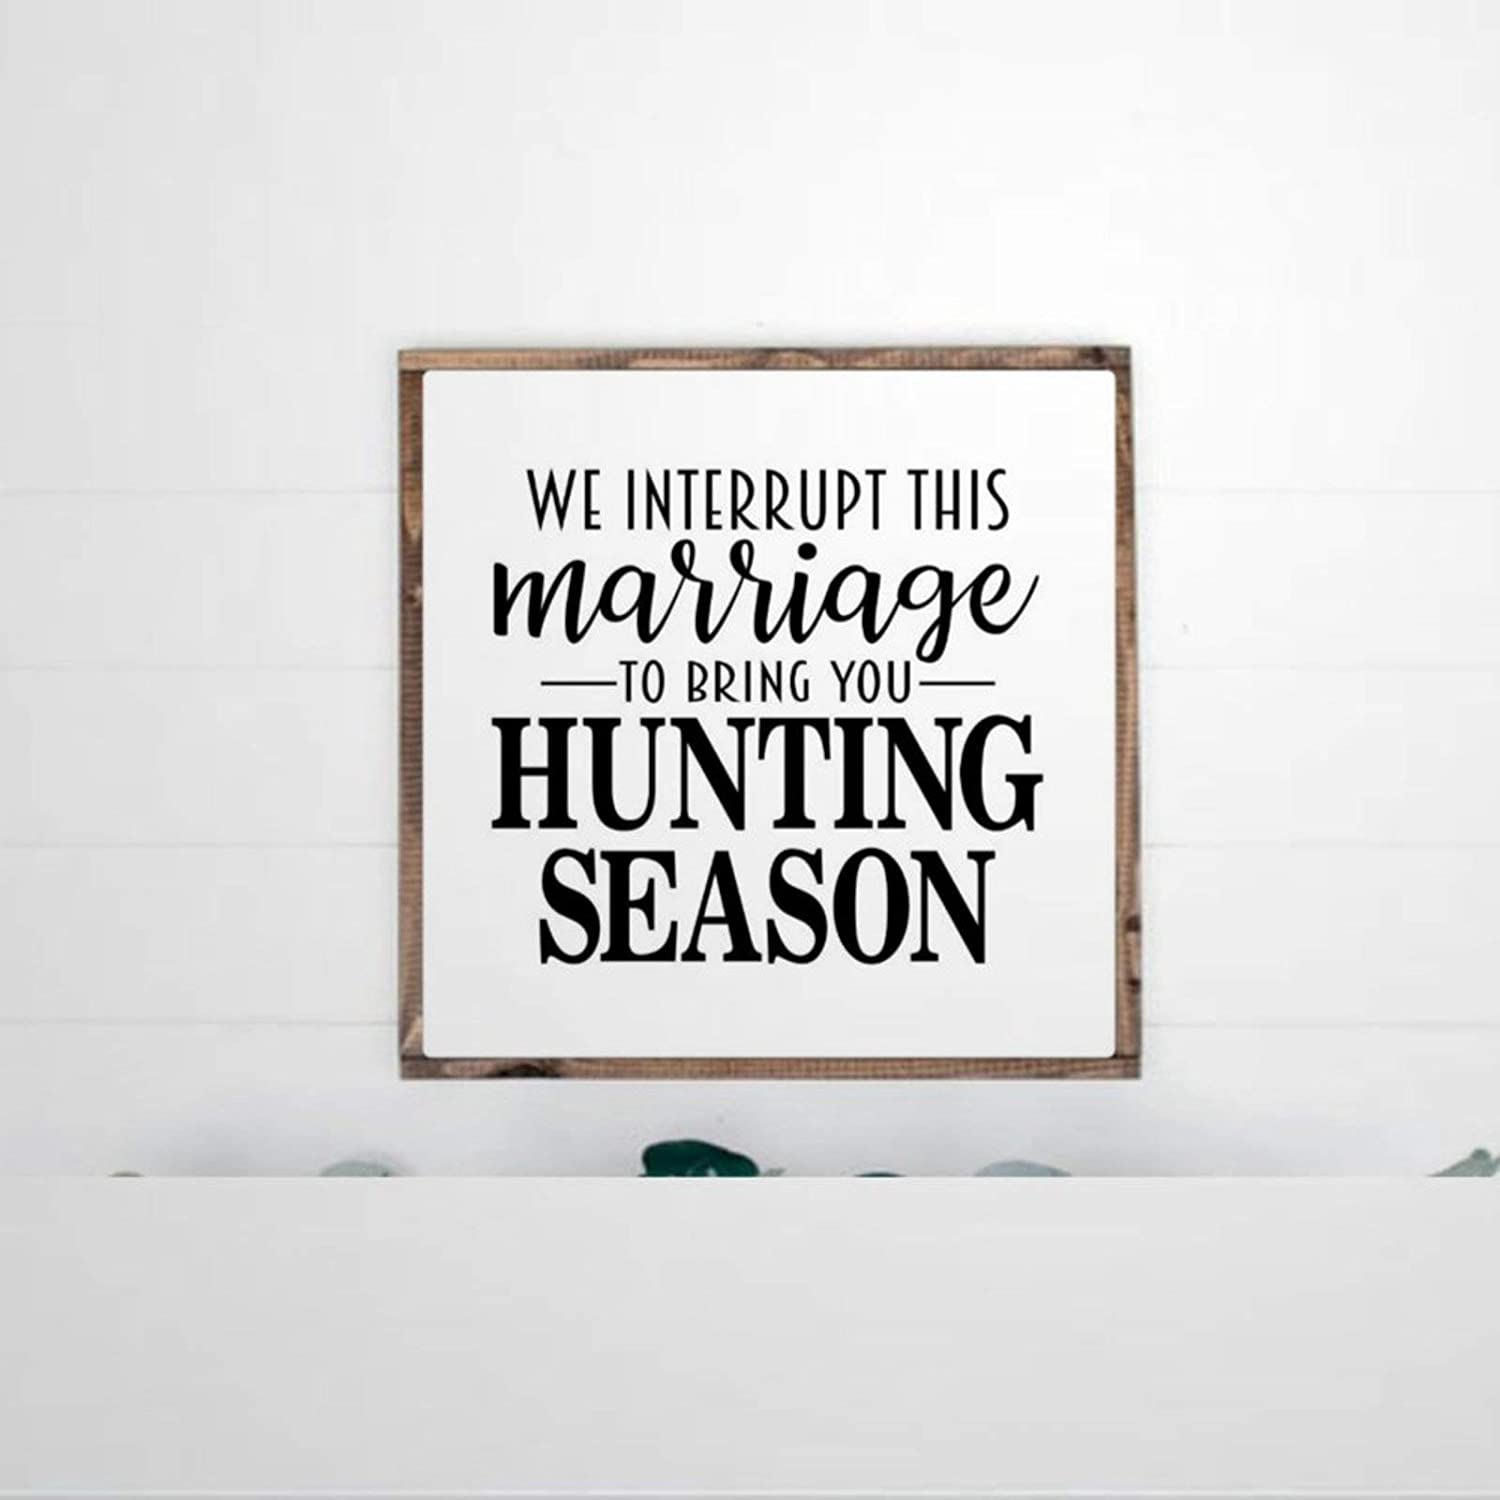 DONL9BAUER Framed Wooden Sign Hunting Wall Hanging We Interrupt This Marriage for Hunting Season, Funny Deer Farmhouse Home Decor Wall Art for Living Room